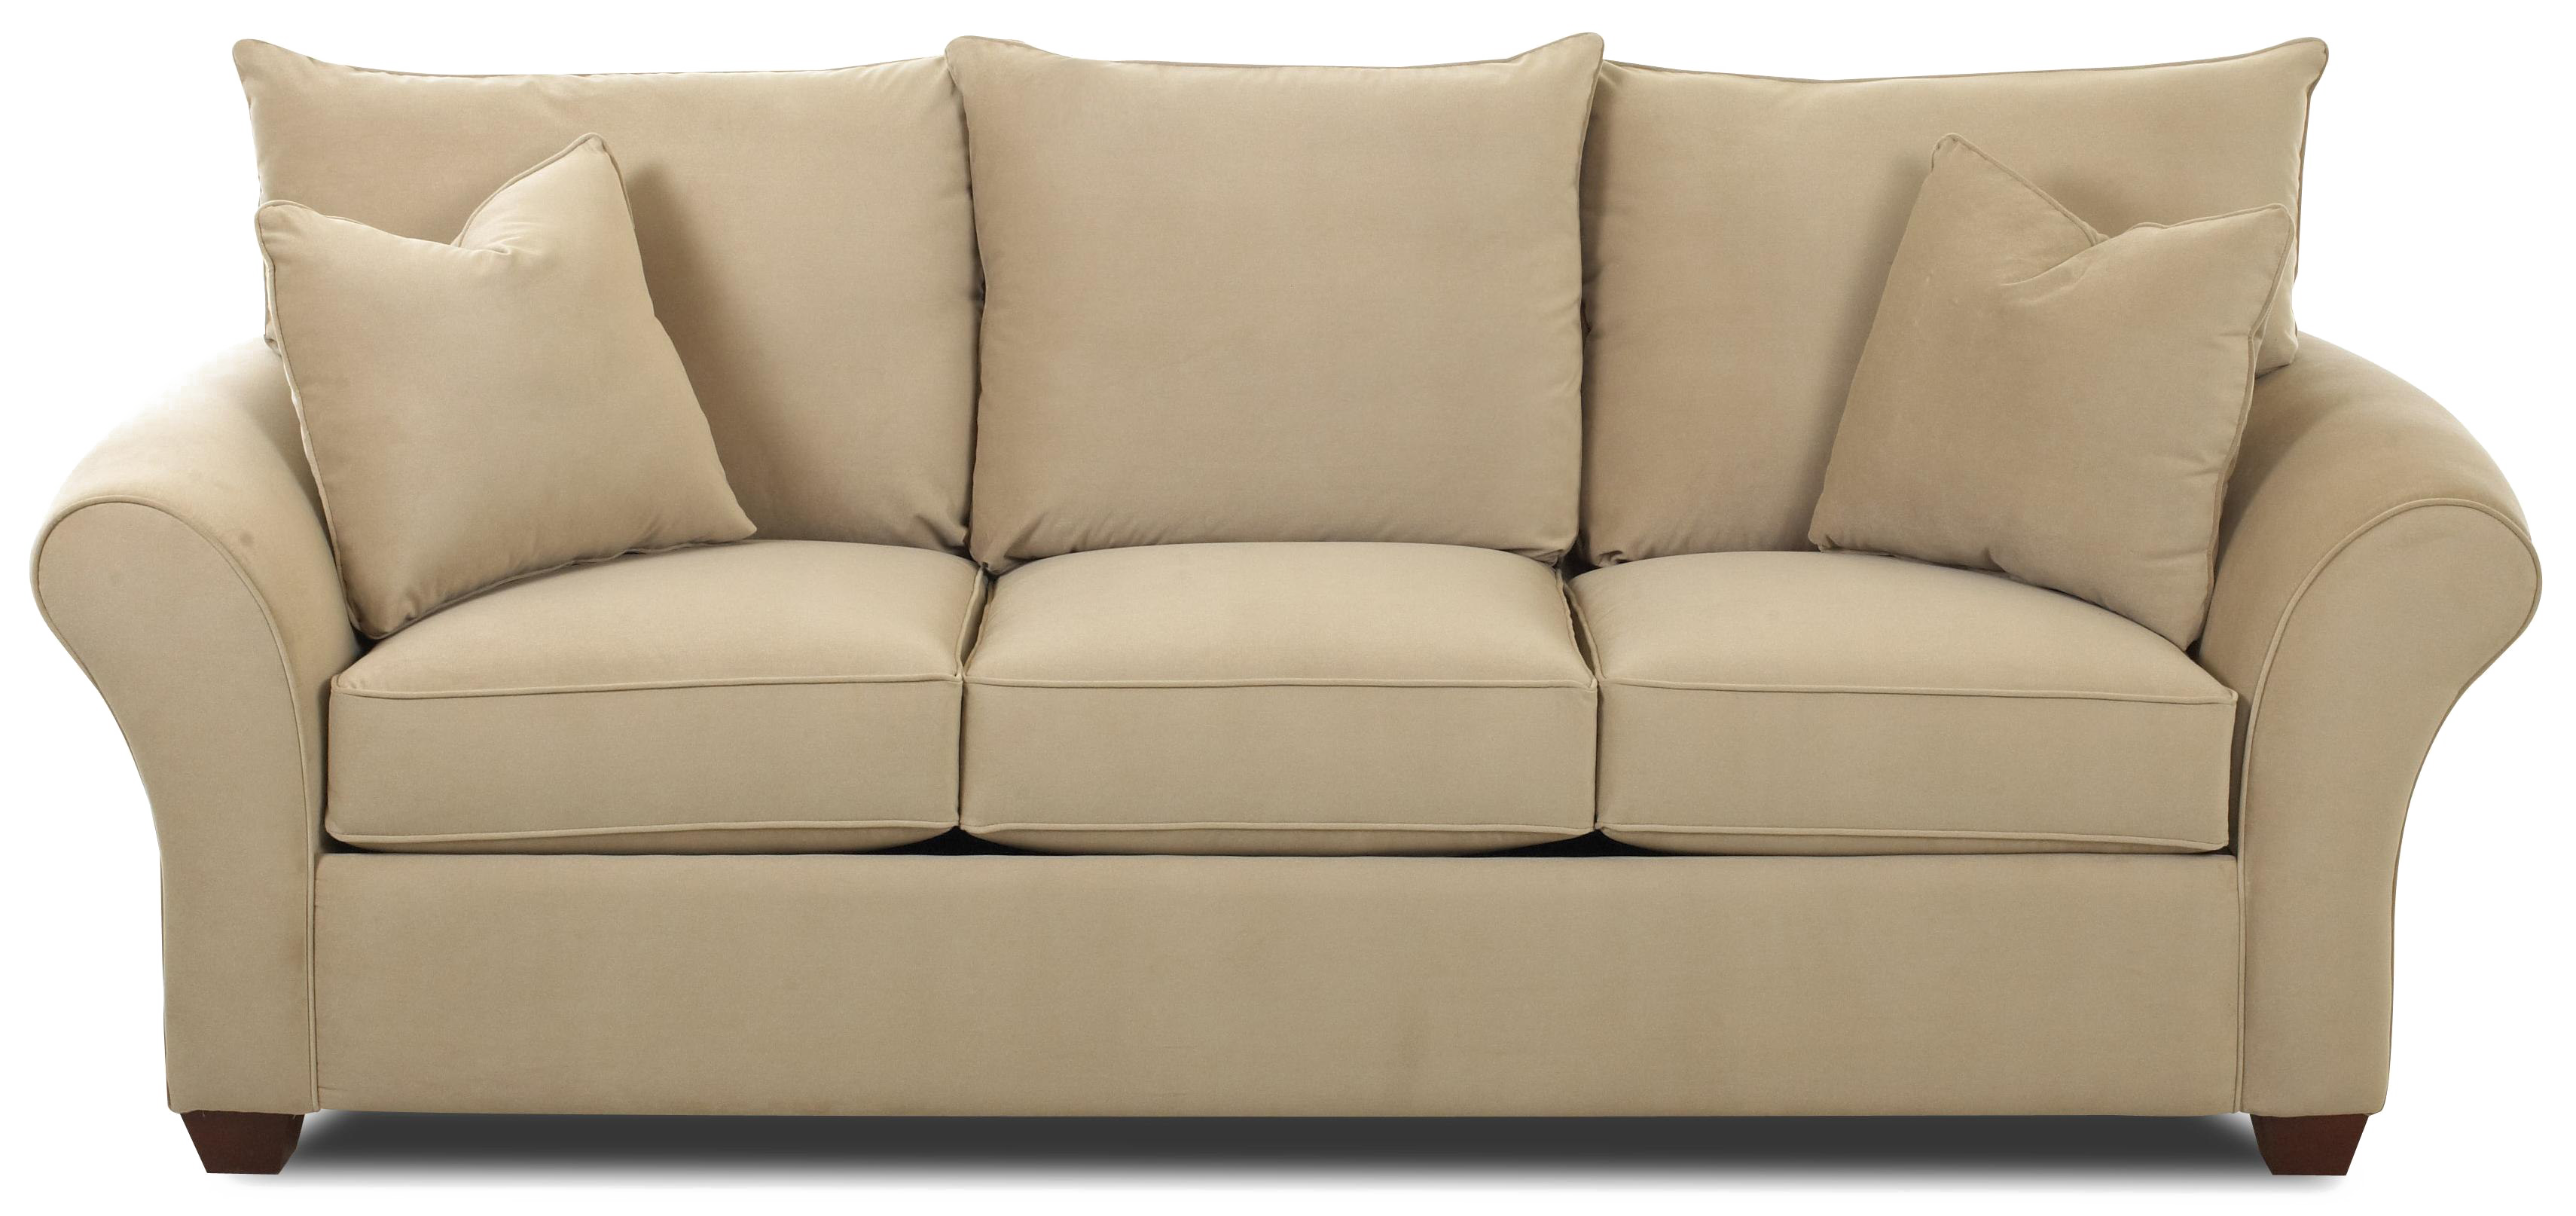 Sofa PNG Images Transparent Free Download.